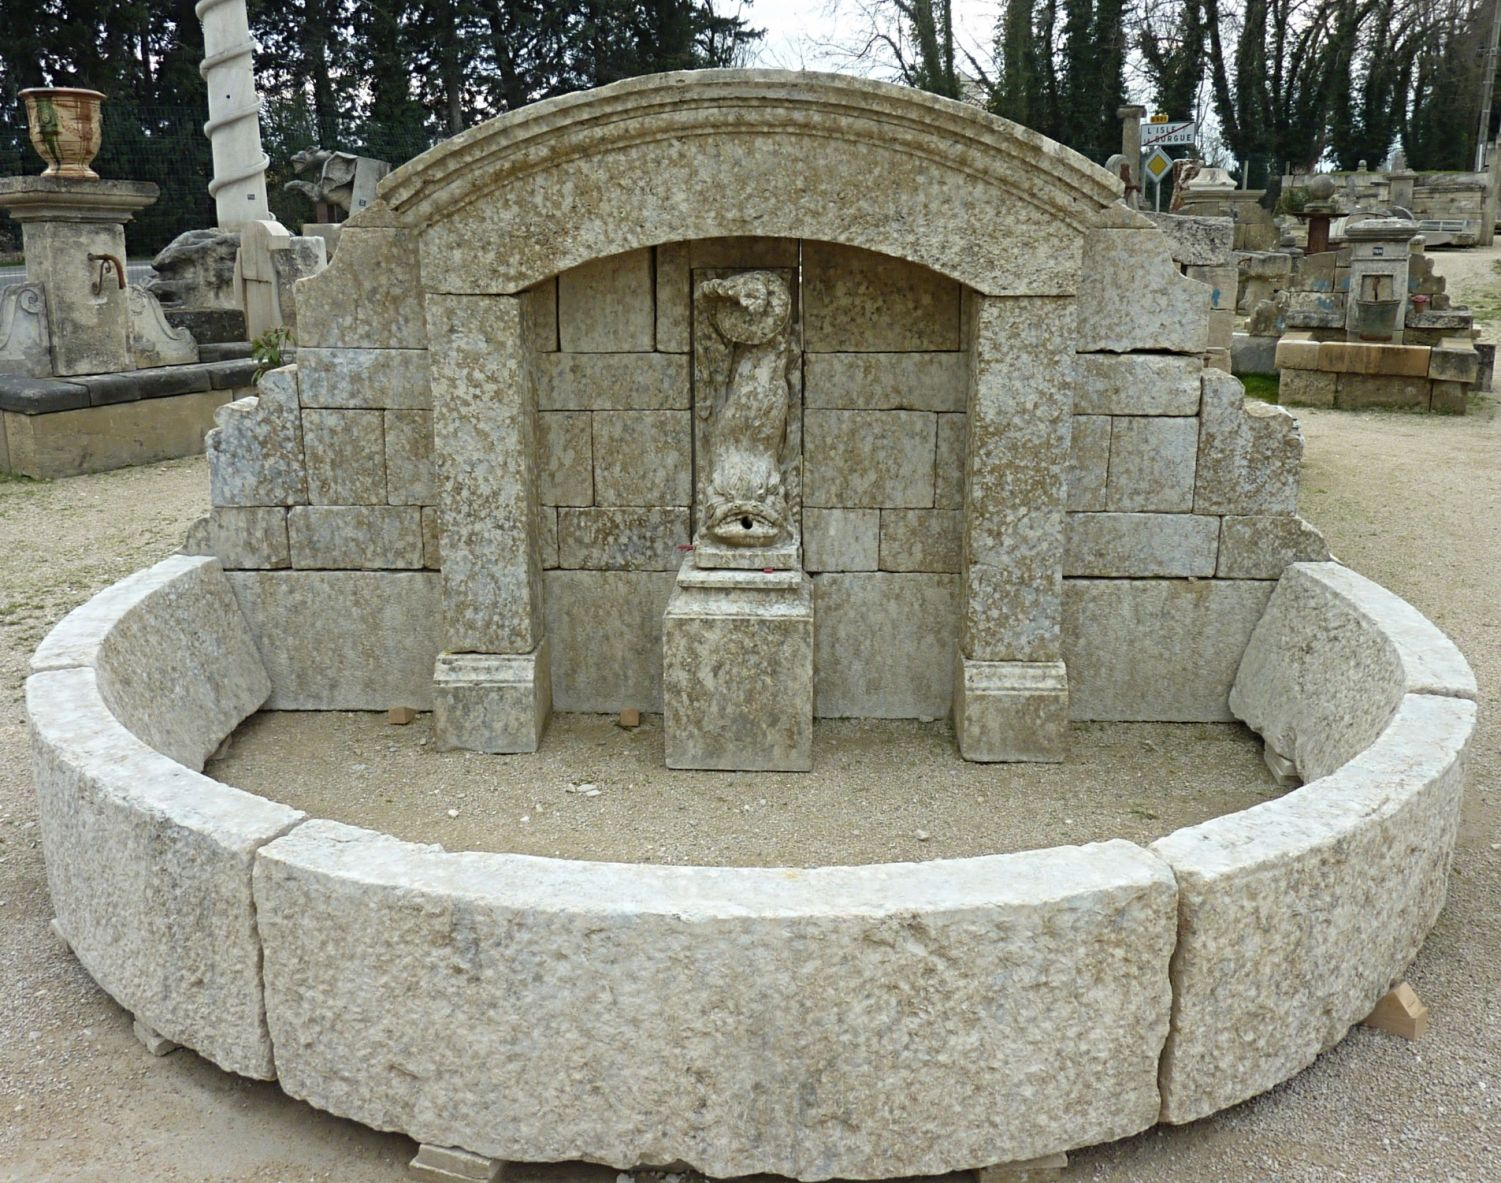 Large fountain in old stones for outdoor landscaping | Fountain with fish spitting water carved in stone.